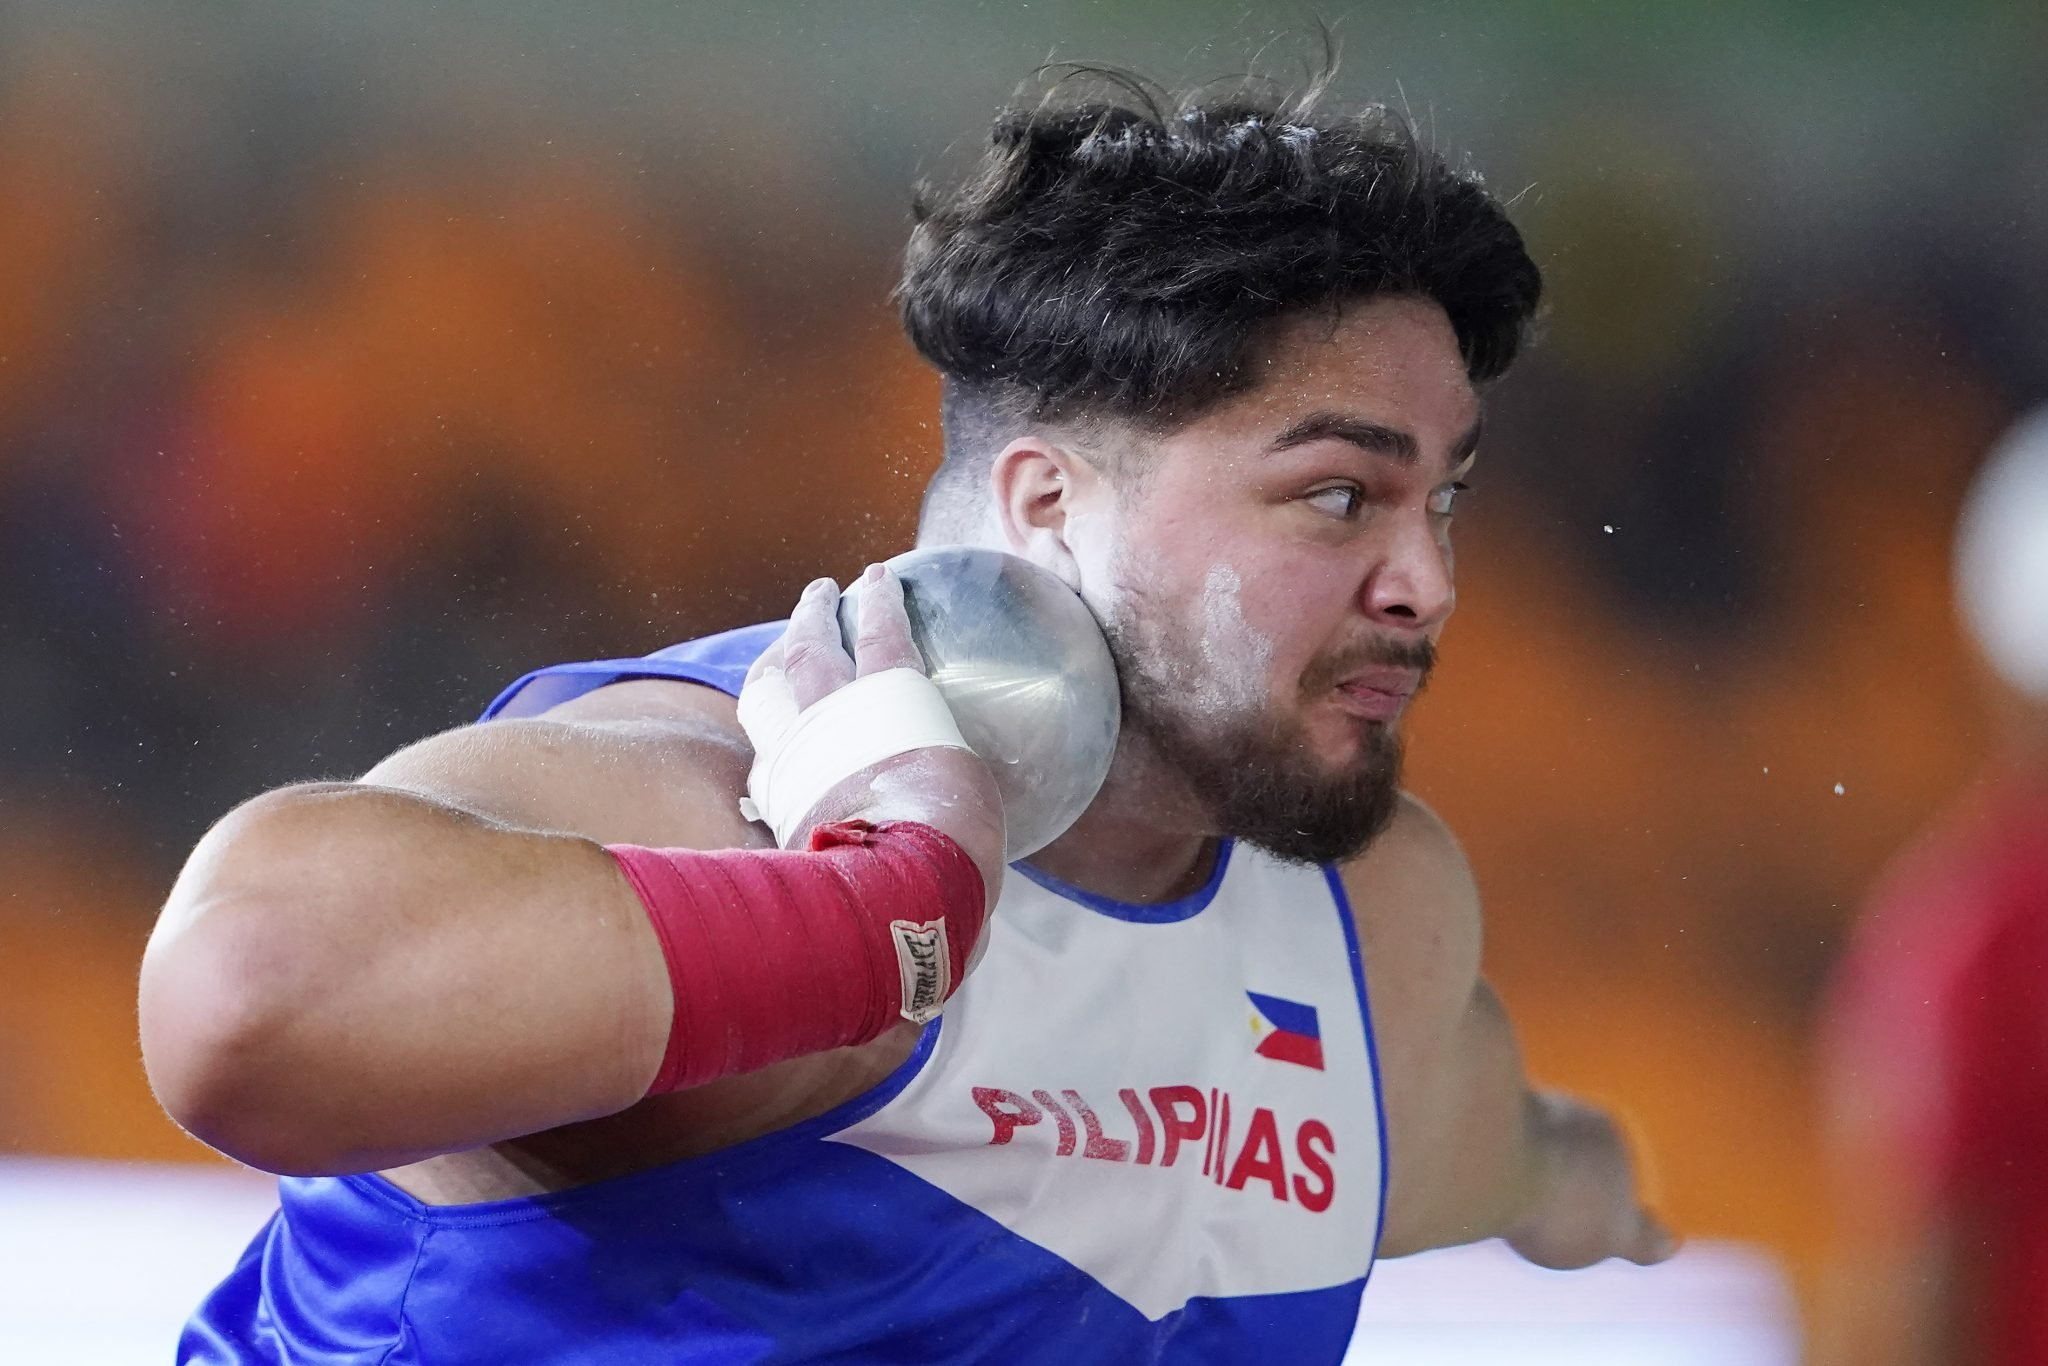 Philippoines Track and Field